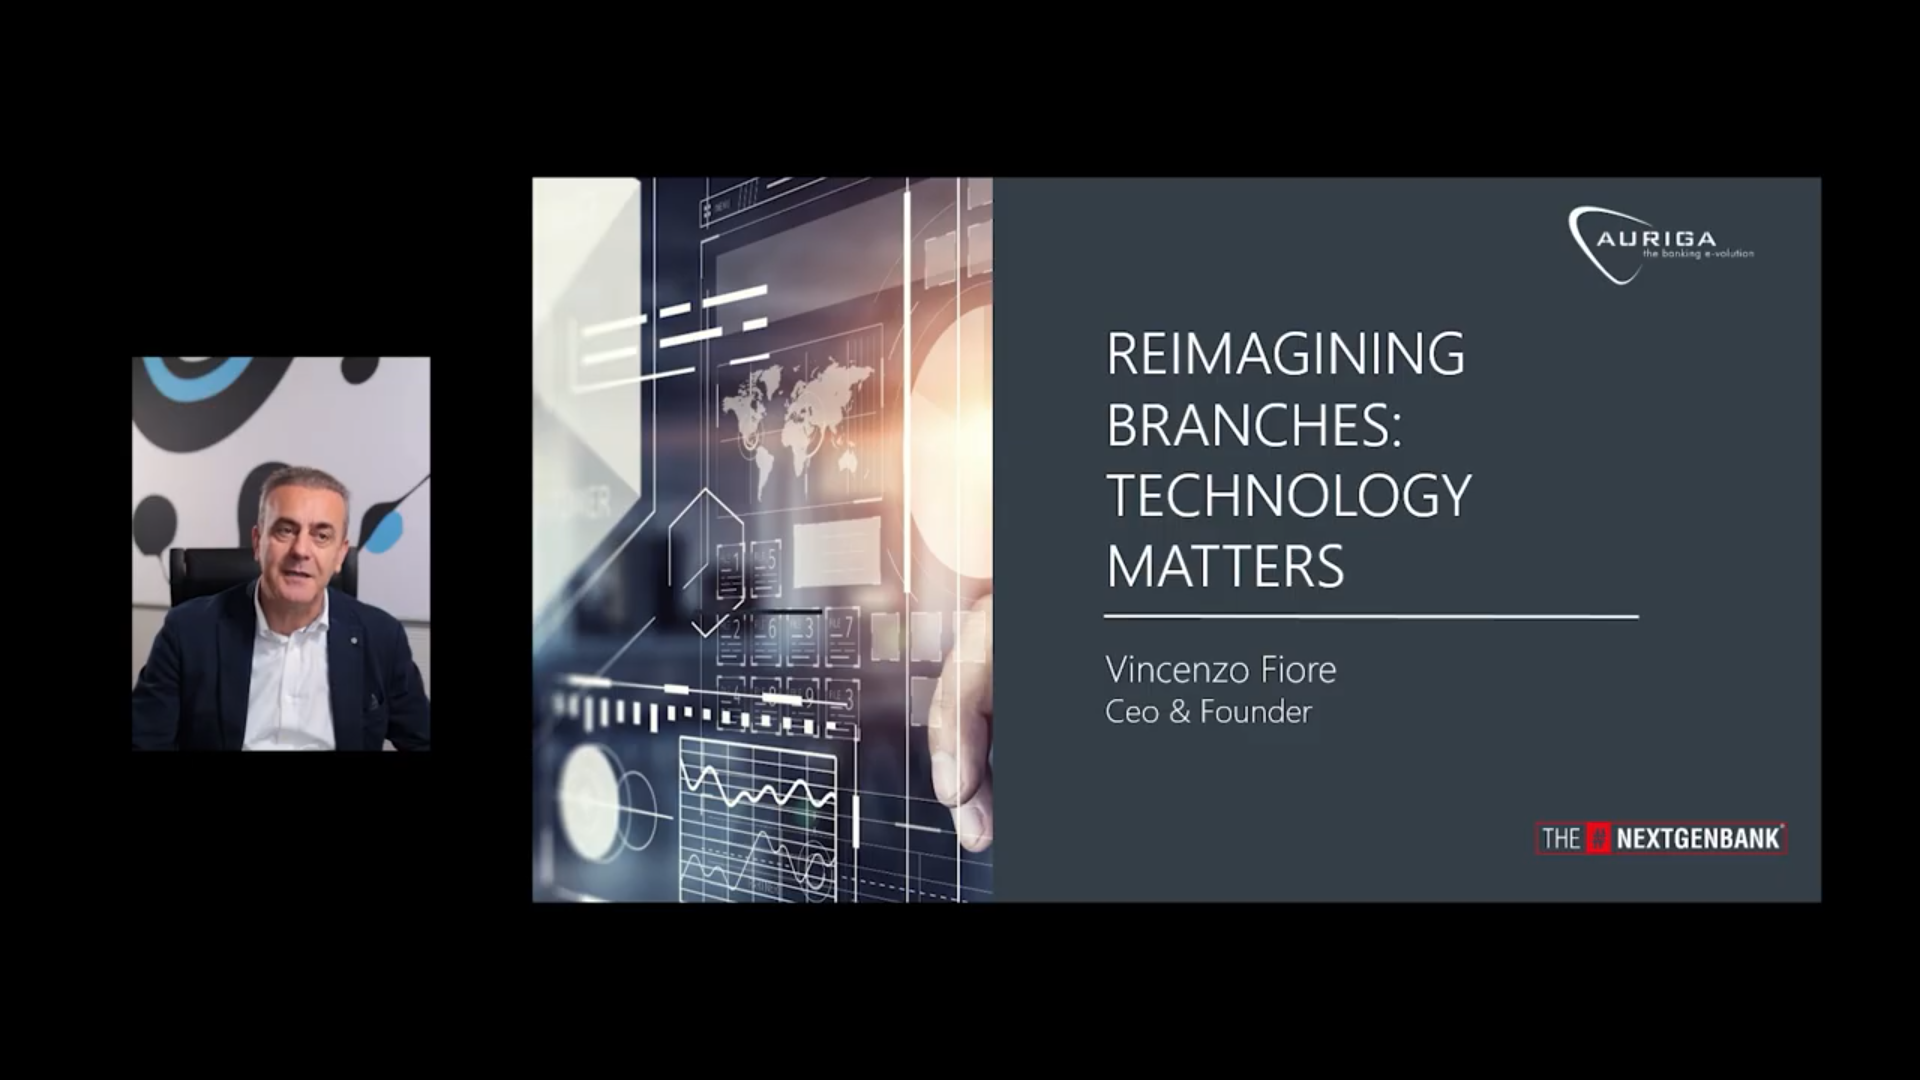 Vincenzo Fiore, Auriga CEO, talks about Reimagining Branches and how Technology Matters